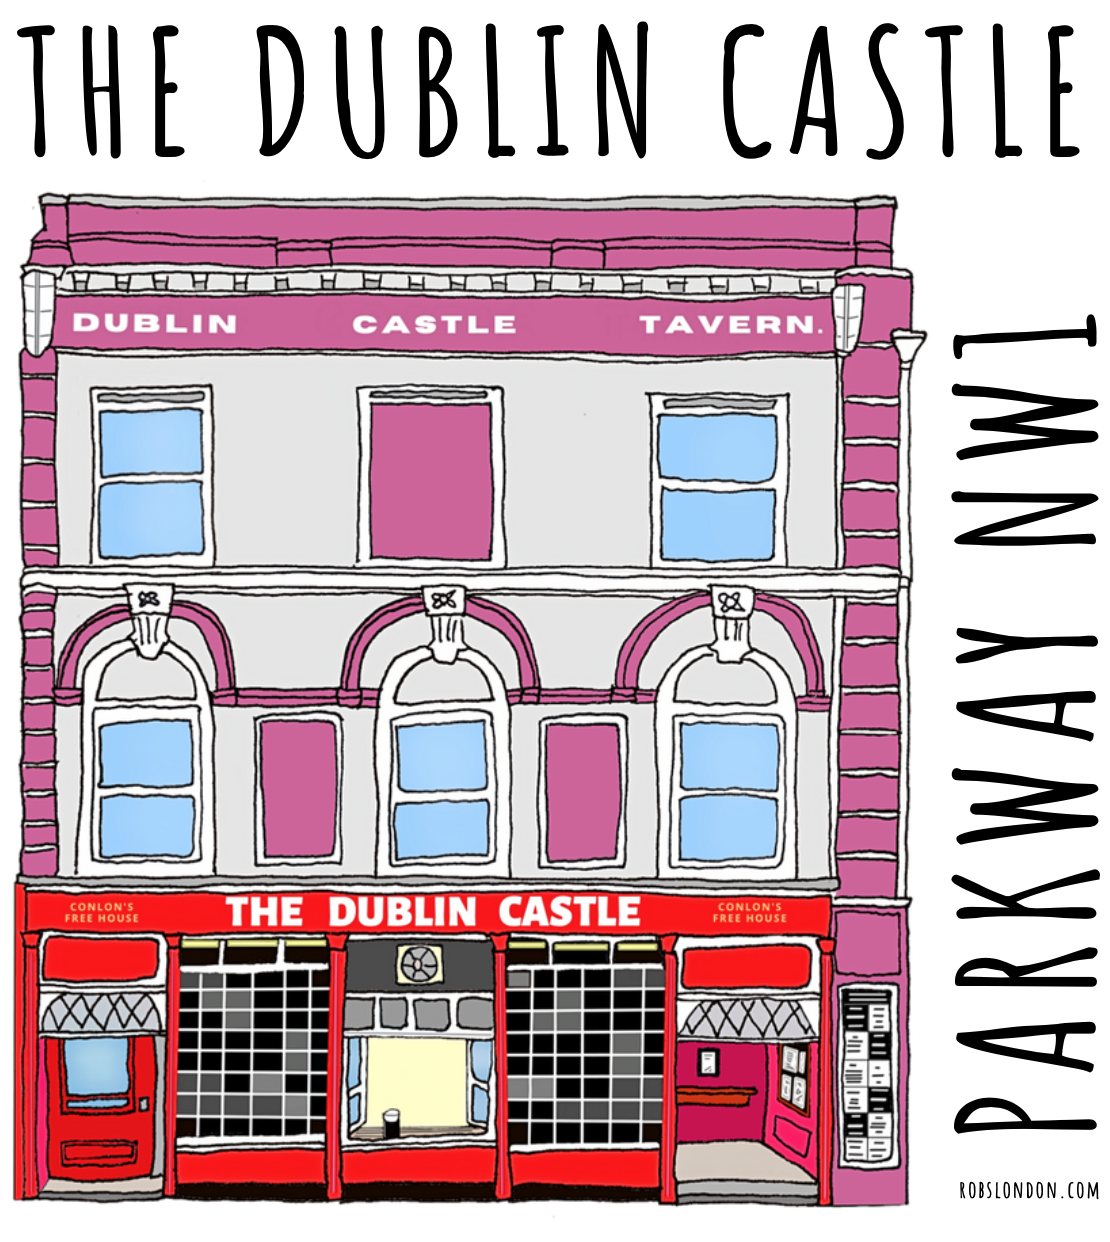 The Dublin Castle mug from robslondon.com